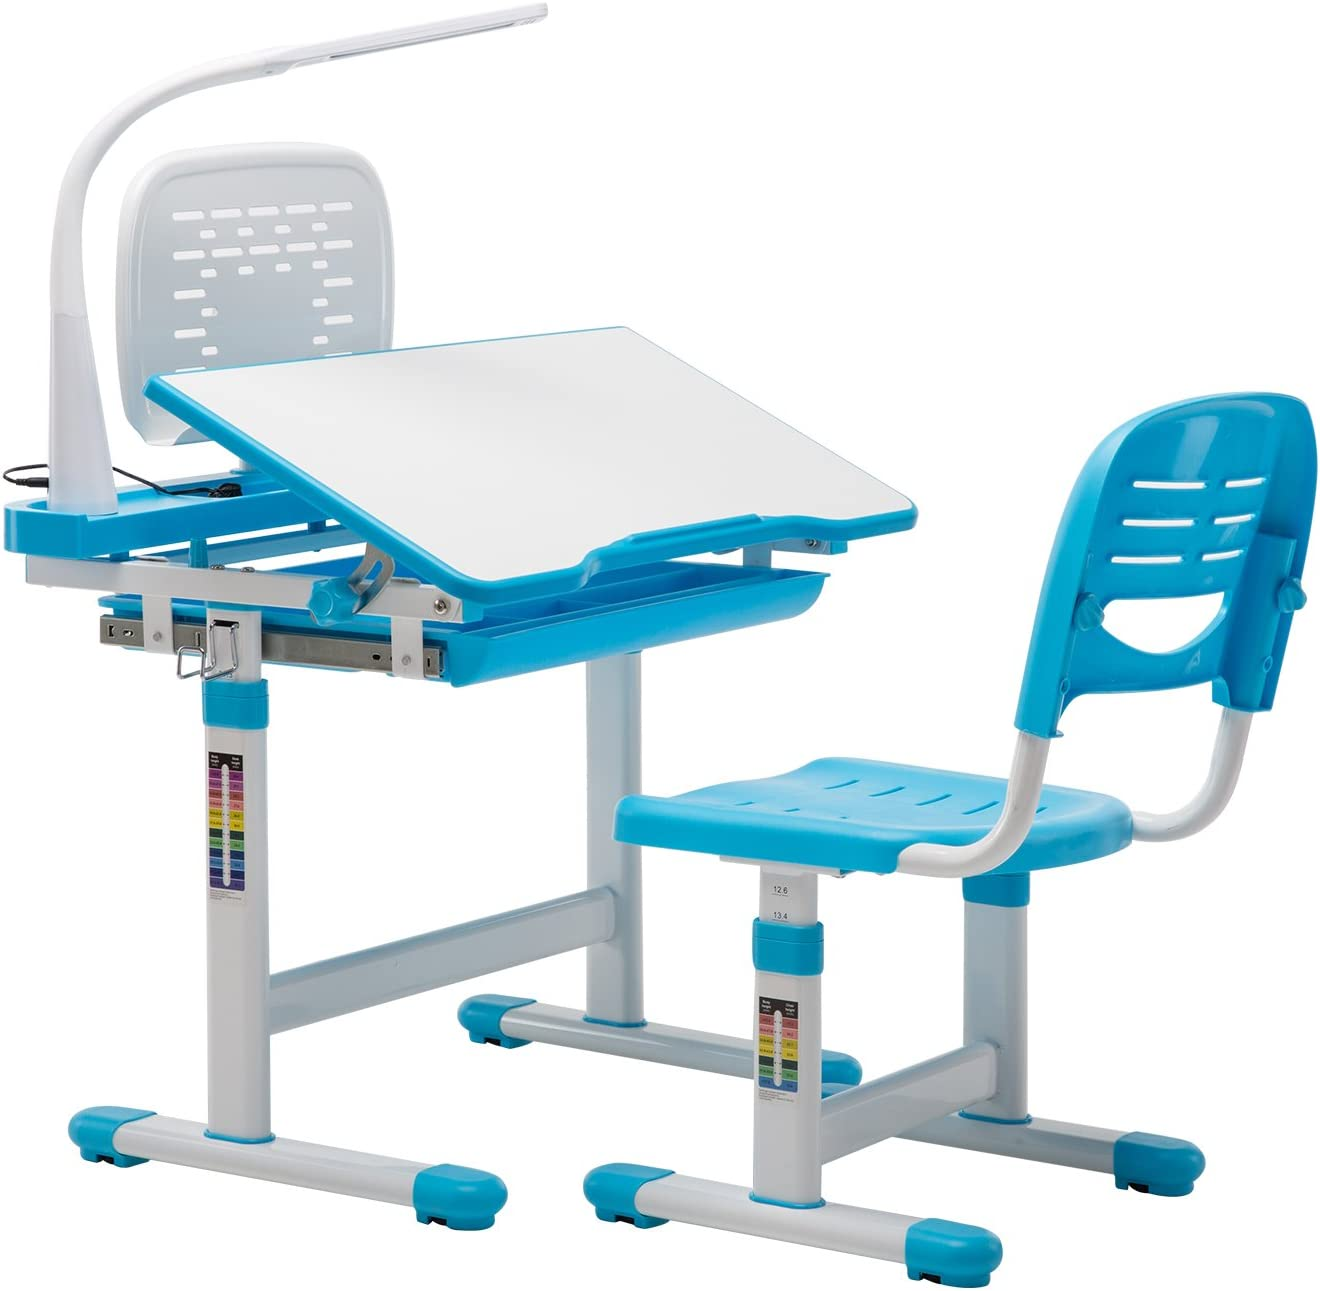 mecor Kids Desk and Chair Adjustable Children Set Direct sale 4 years warranty of manufacturer Student Height